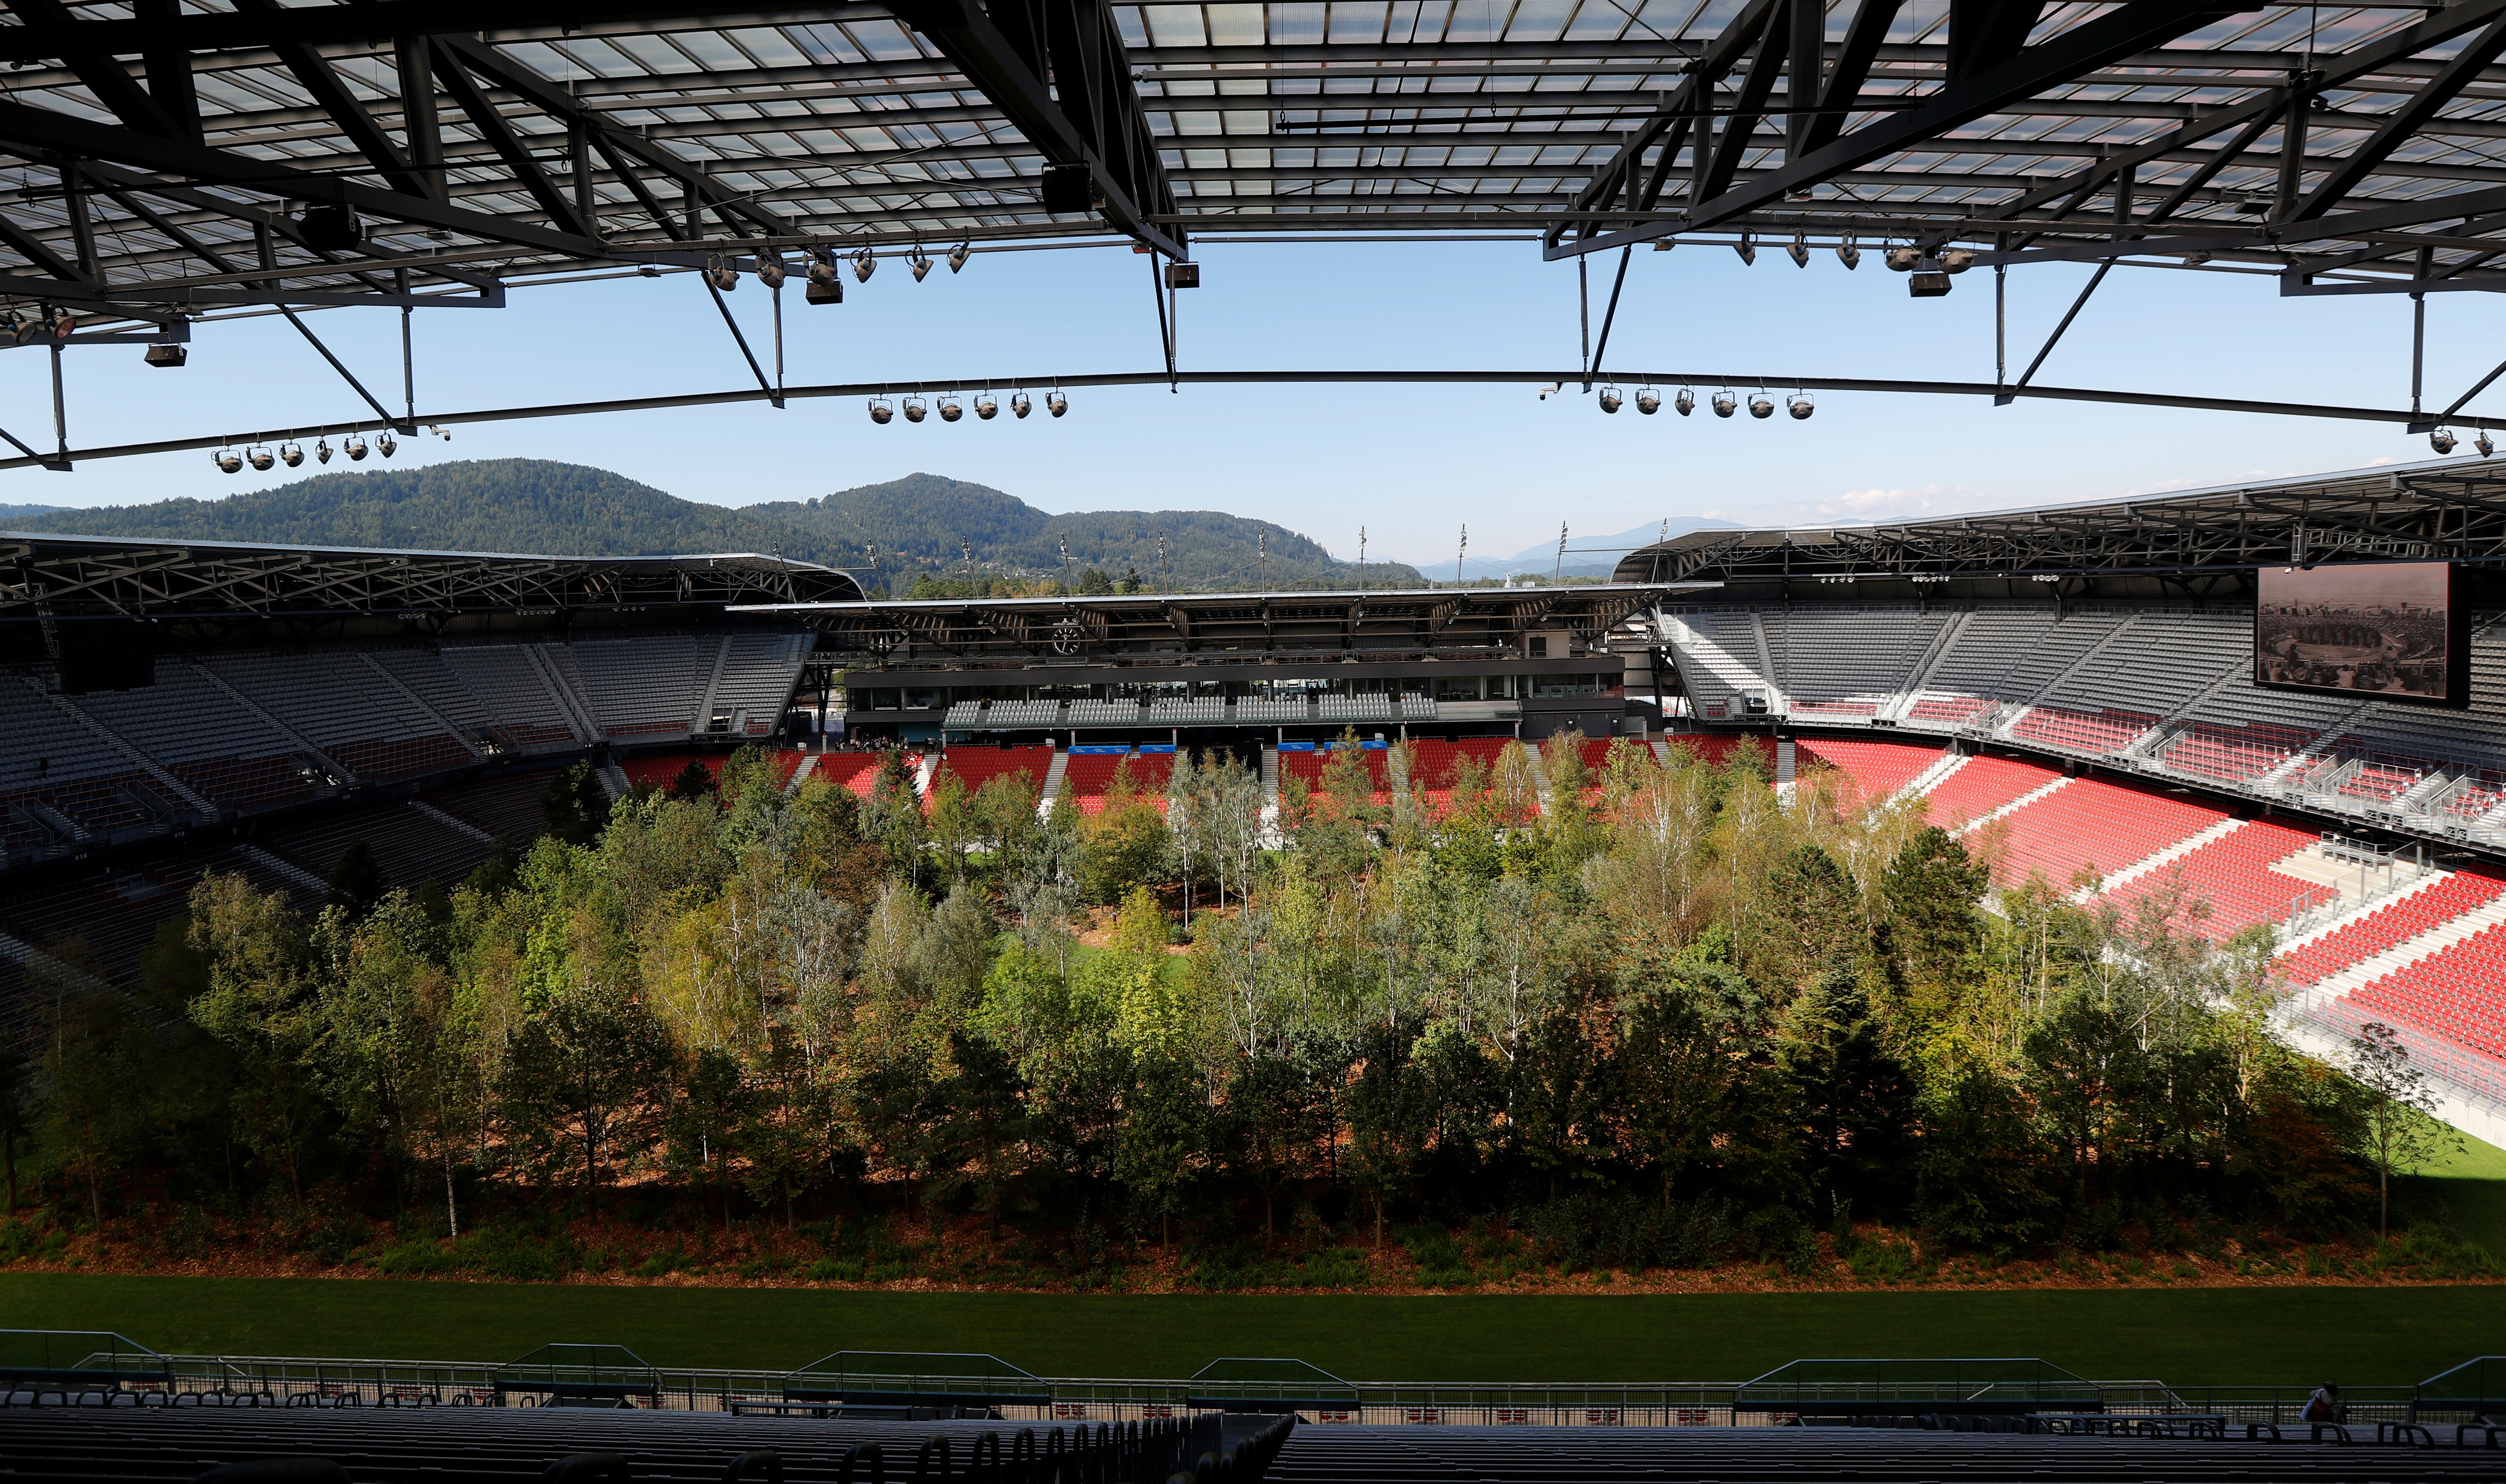 About 300 trees have been installed at Wörthersee Stadium in Klagenfurt.